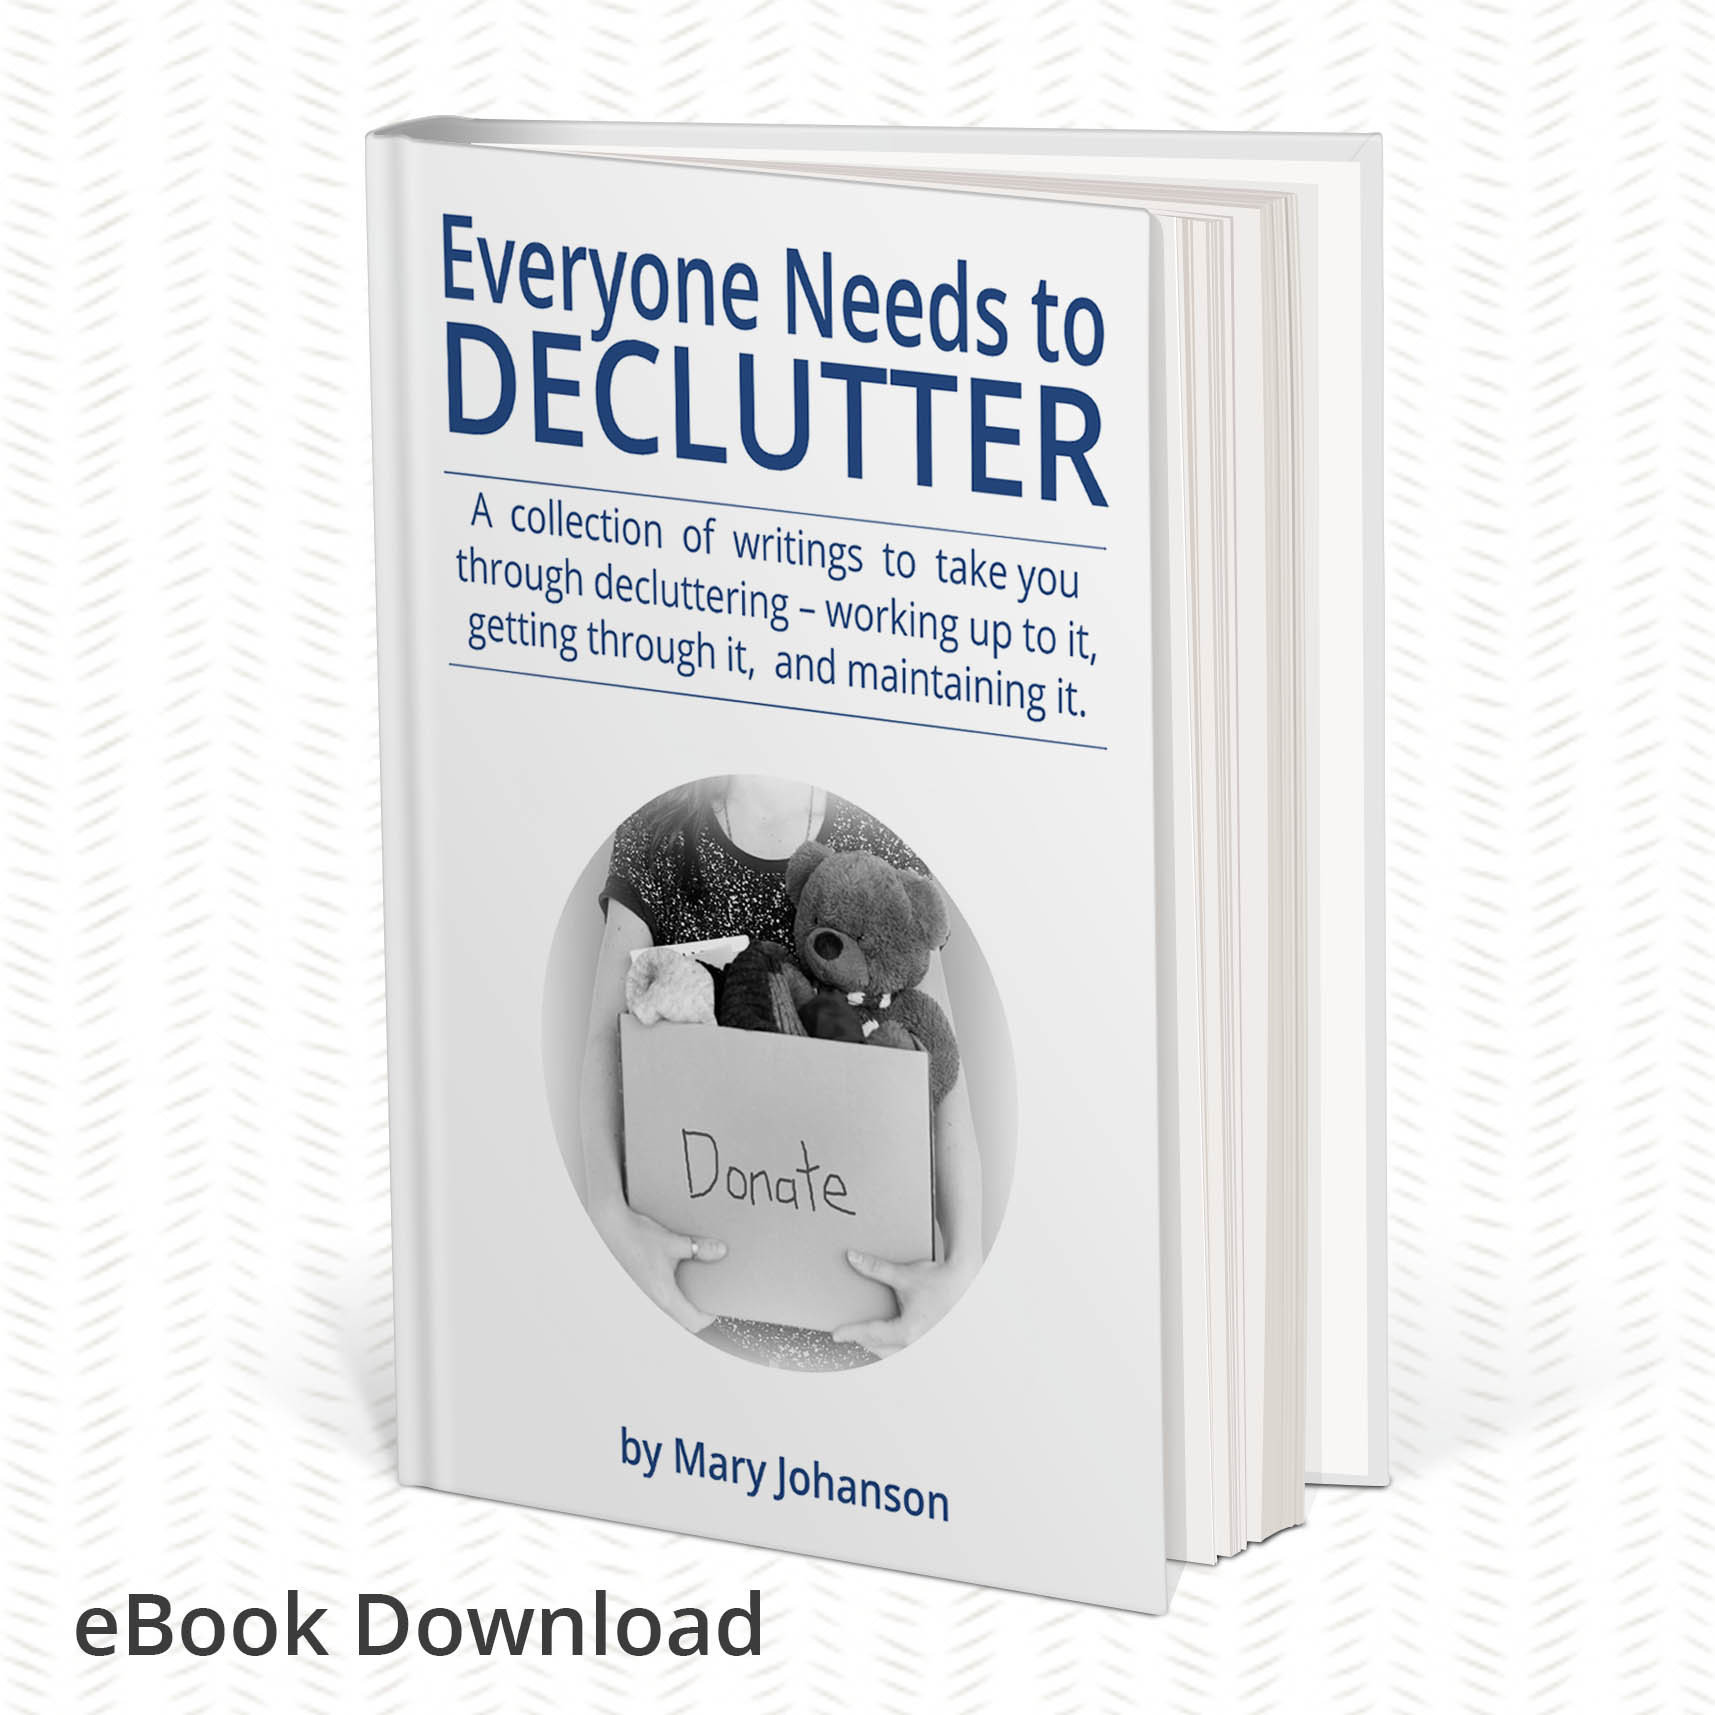 Everyone Needs to Declutter (eBook)